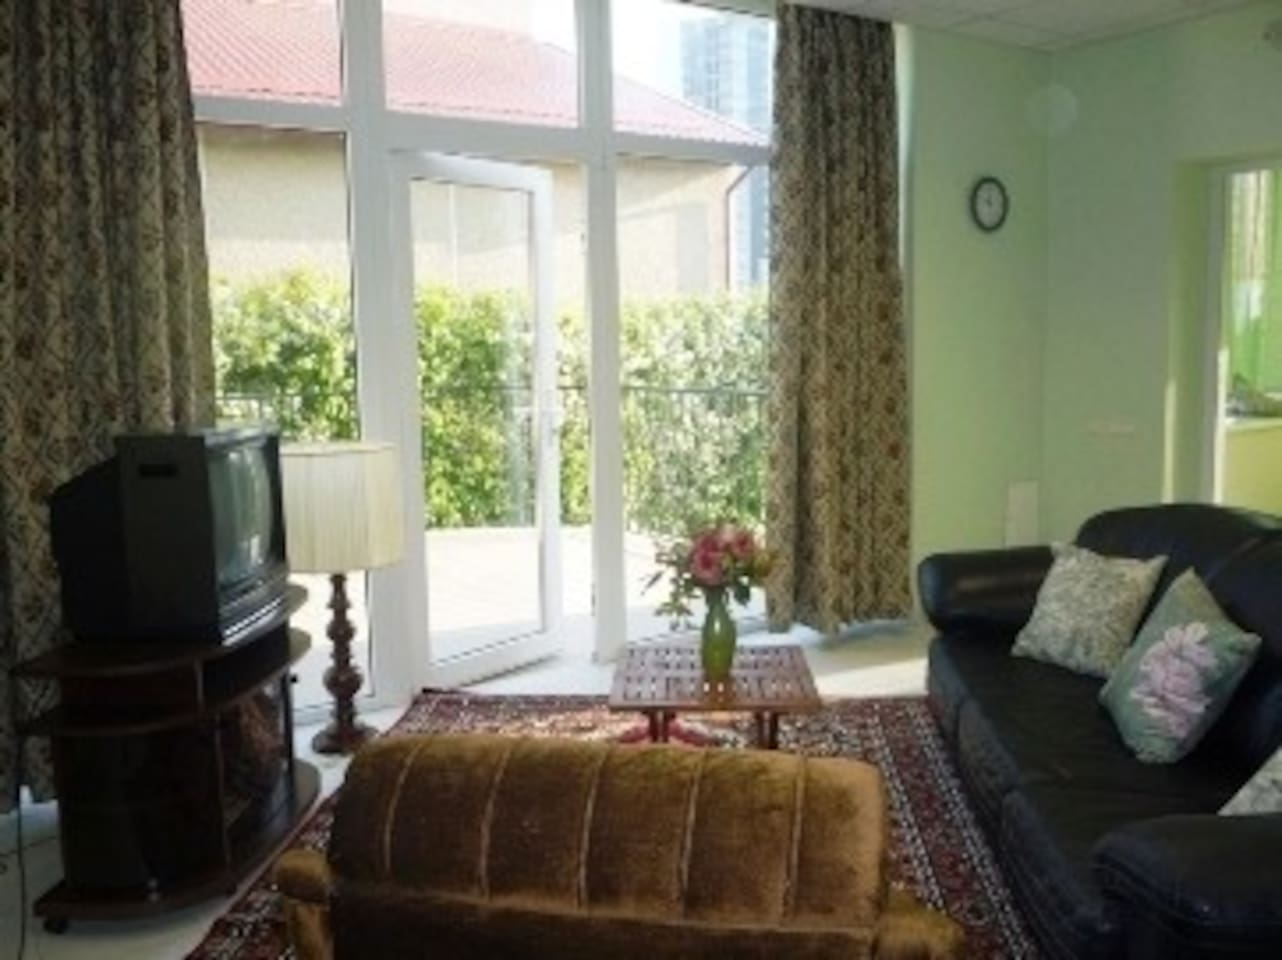 This beautiful and spacious one-bedroom apartment for rent in Klaipeda has the benefit of ensuite facilities and a large sun terrace for your added pleasure.